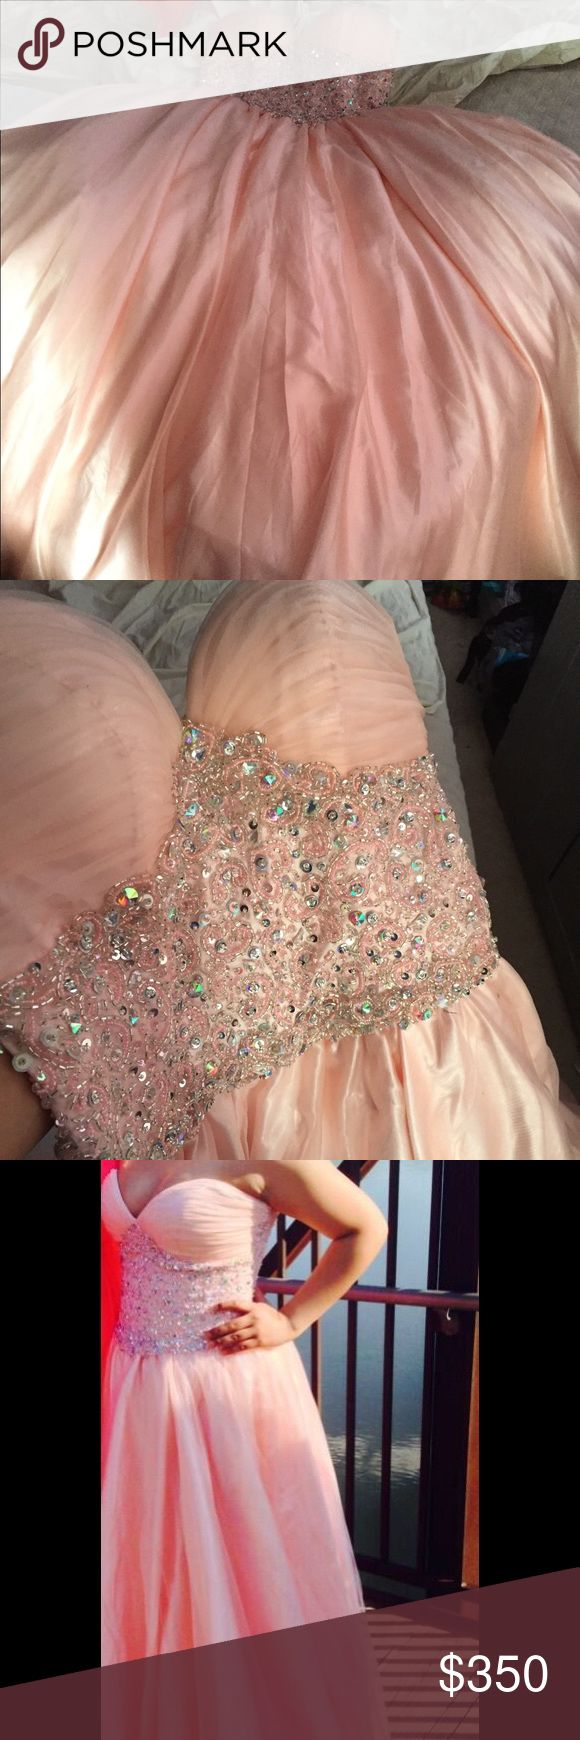 Pink puffy prom dress Long, strapless, sequenced, pink, puffy prom dress Dresses Prom